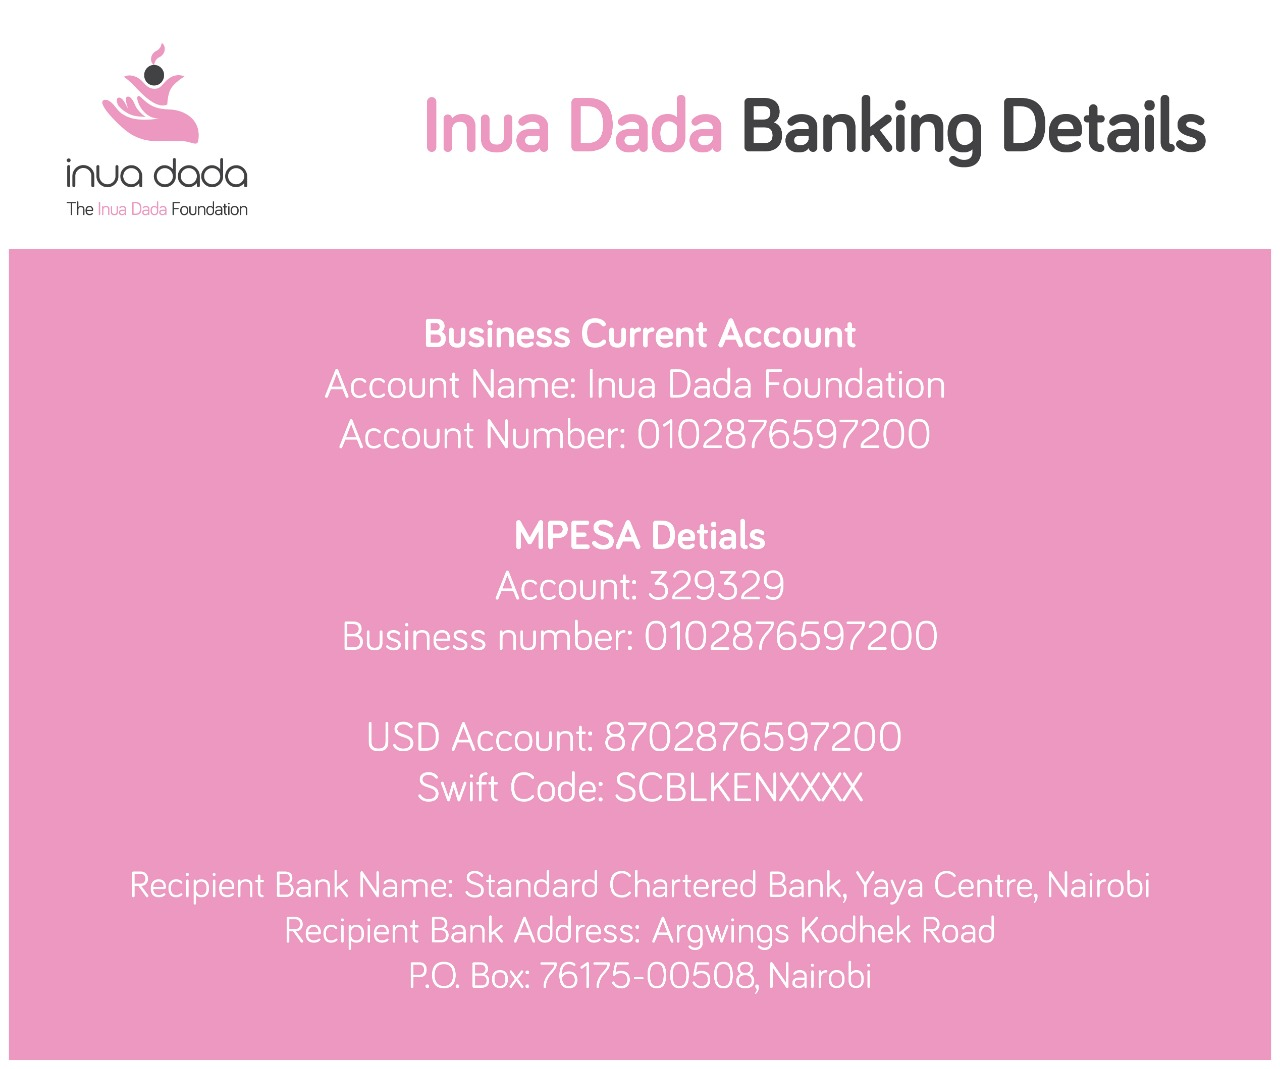 https://officialjanetmbugua.com/wp-content/uploads/2020/05/inua-dada-bank-details.jpeg